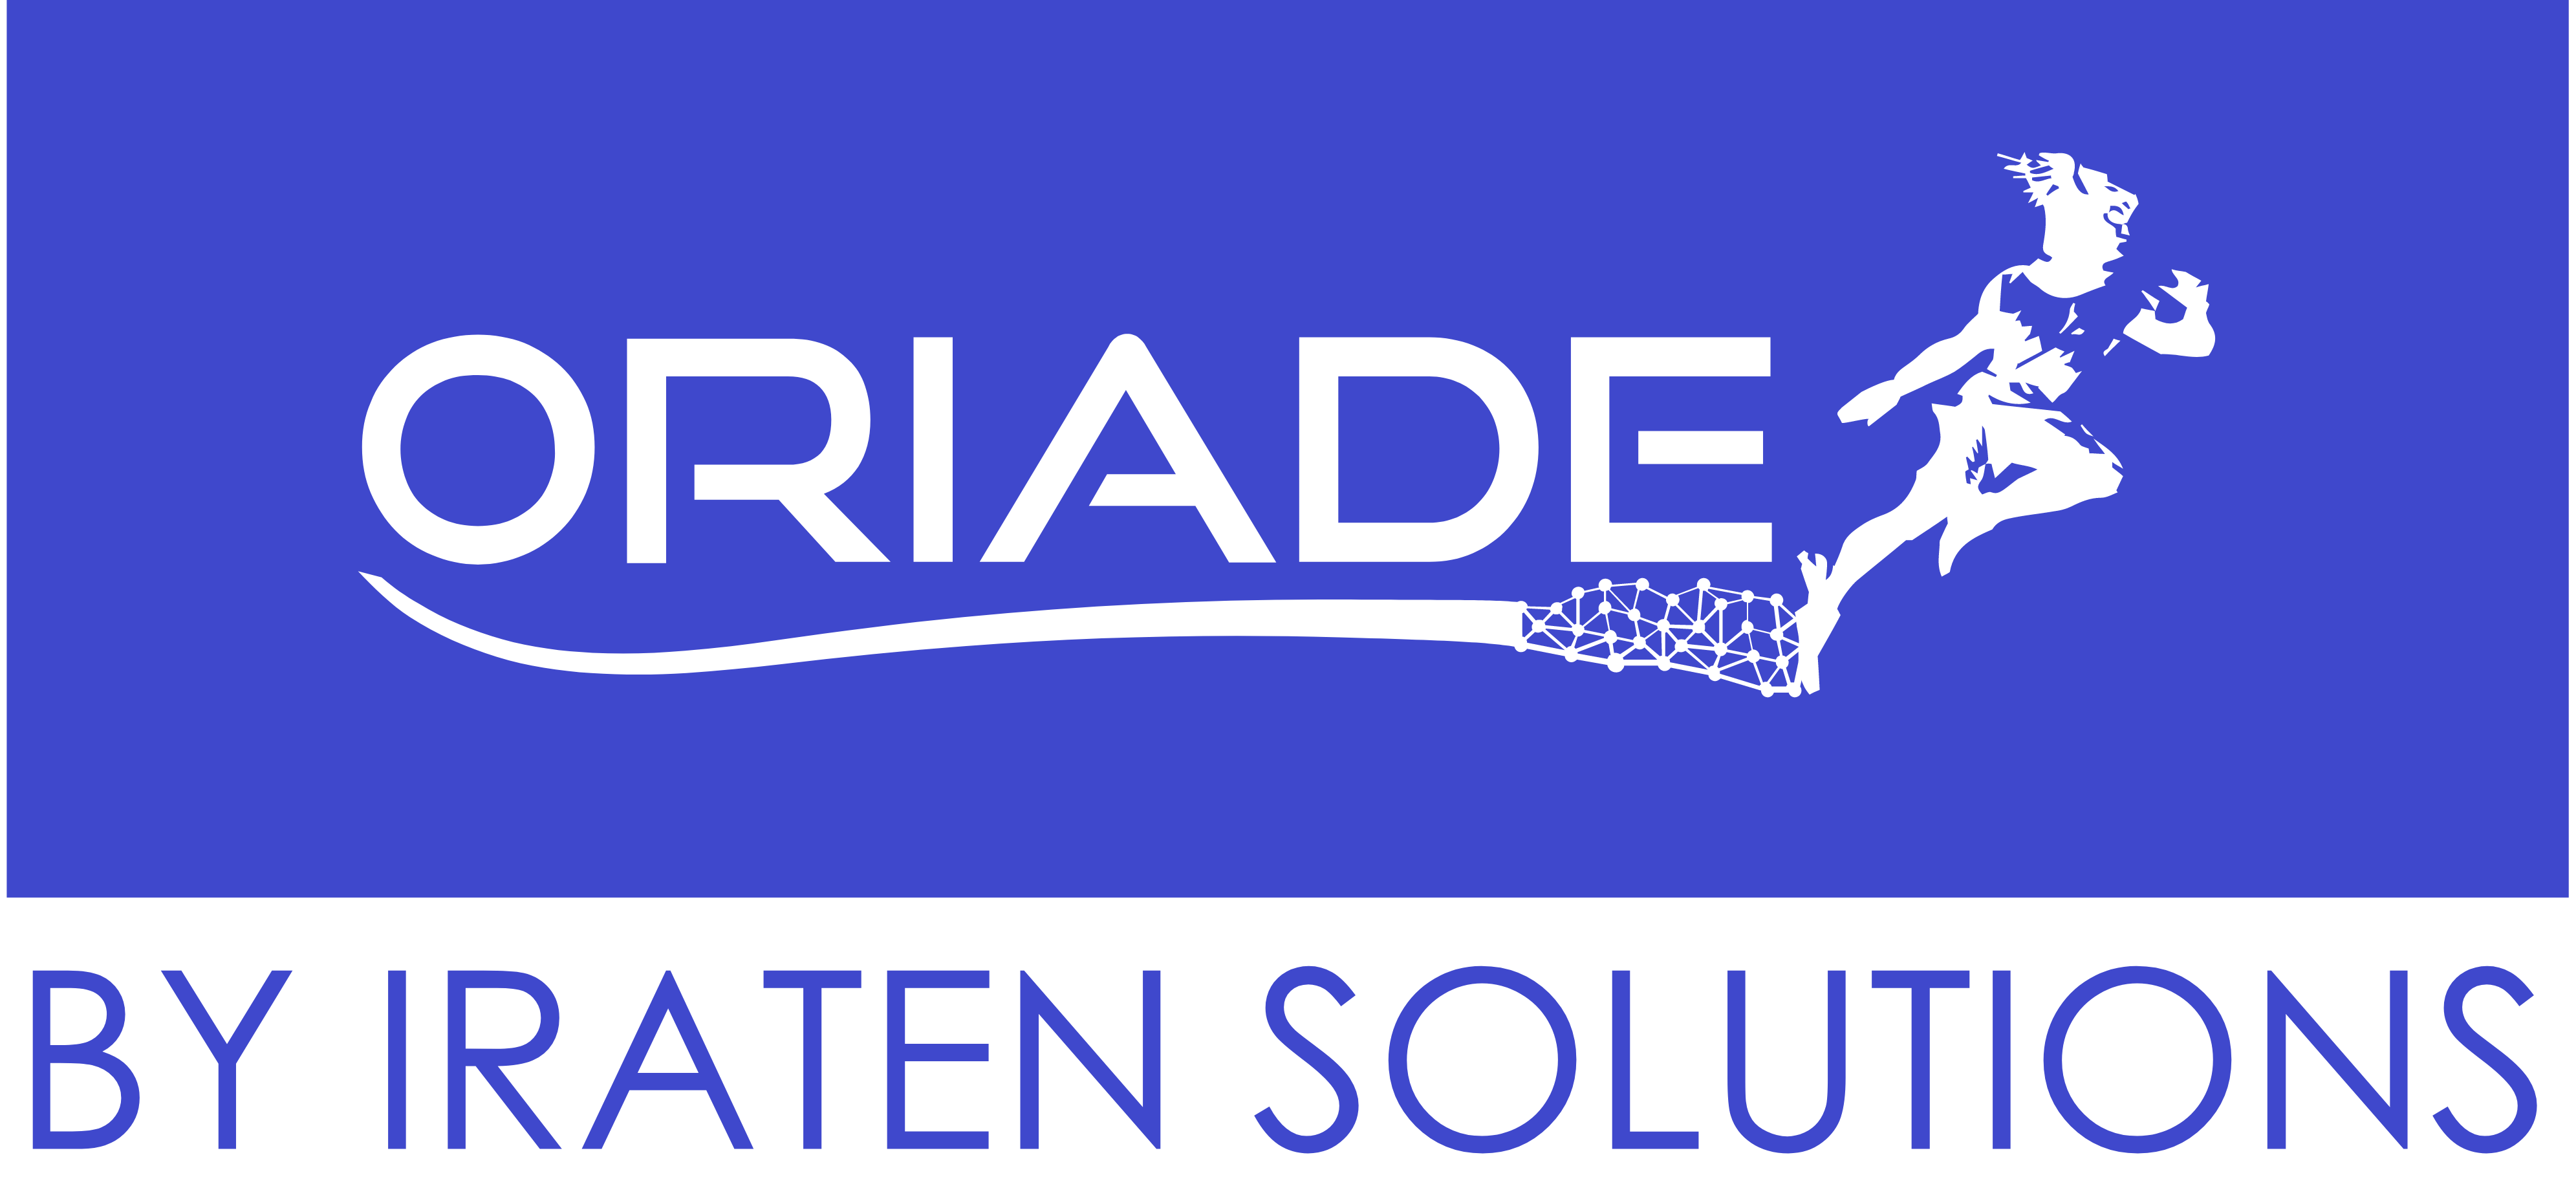 Oriade By Iraten Solutions